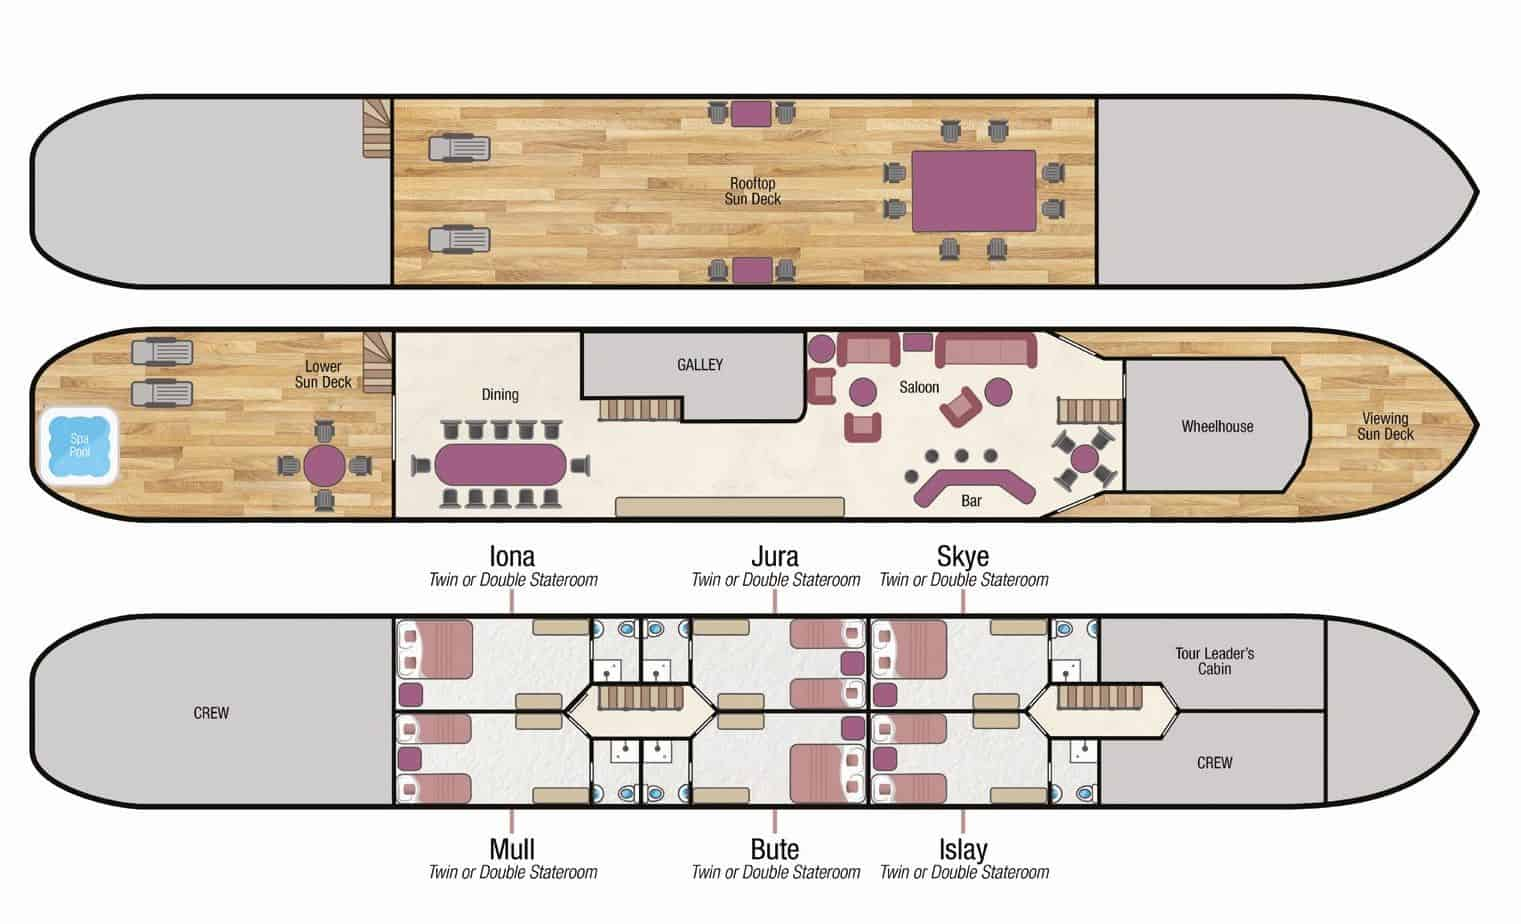 Deckplan of Spirit of Scotland hotel barge with 3 passenger decks, 6 staterooms, dining room, saloon, bar, wheelhouse, spa pool & 3 sun deck areas